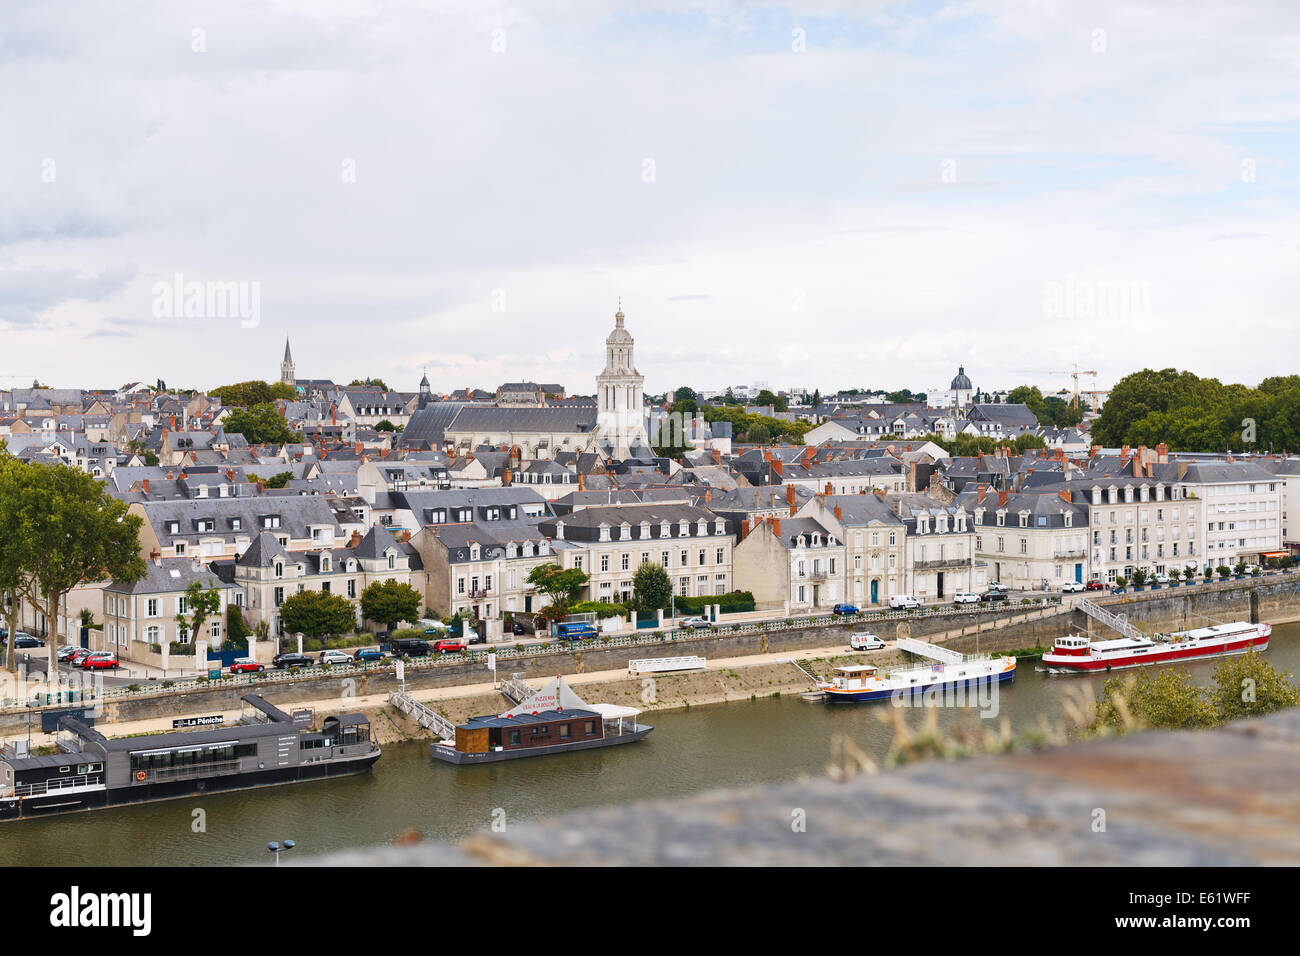 ANGERS, FRANCE - JULY 28, 2014: quay des Carmes in Anges, France. Angers is city in western France and it is the - Stock Image